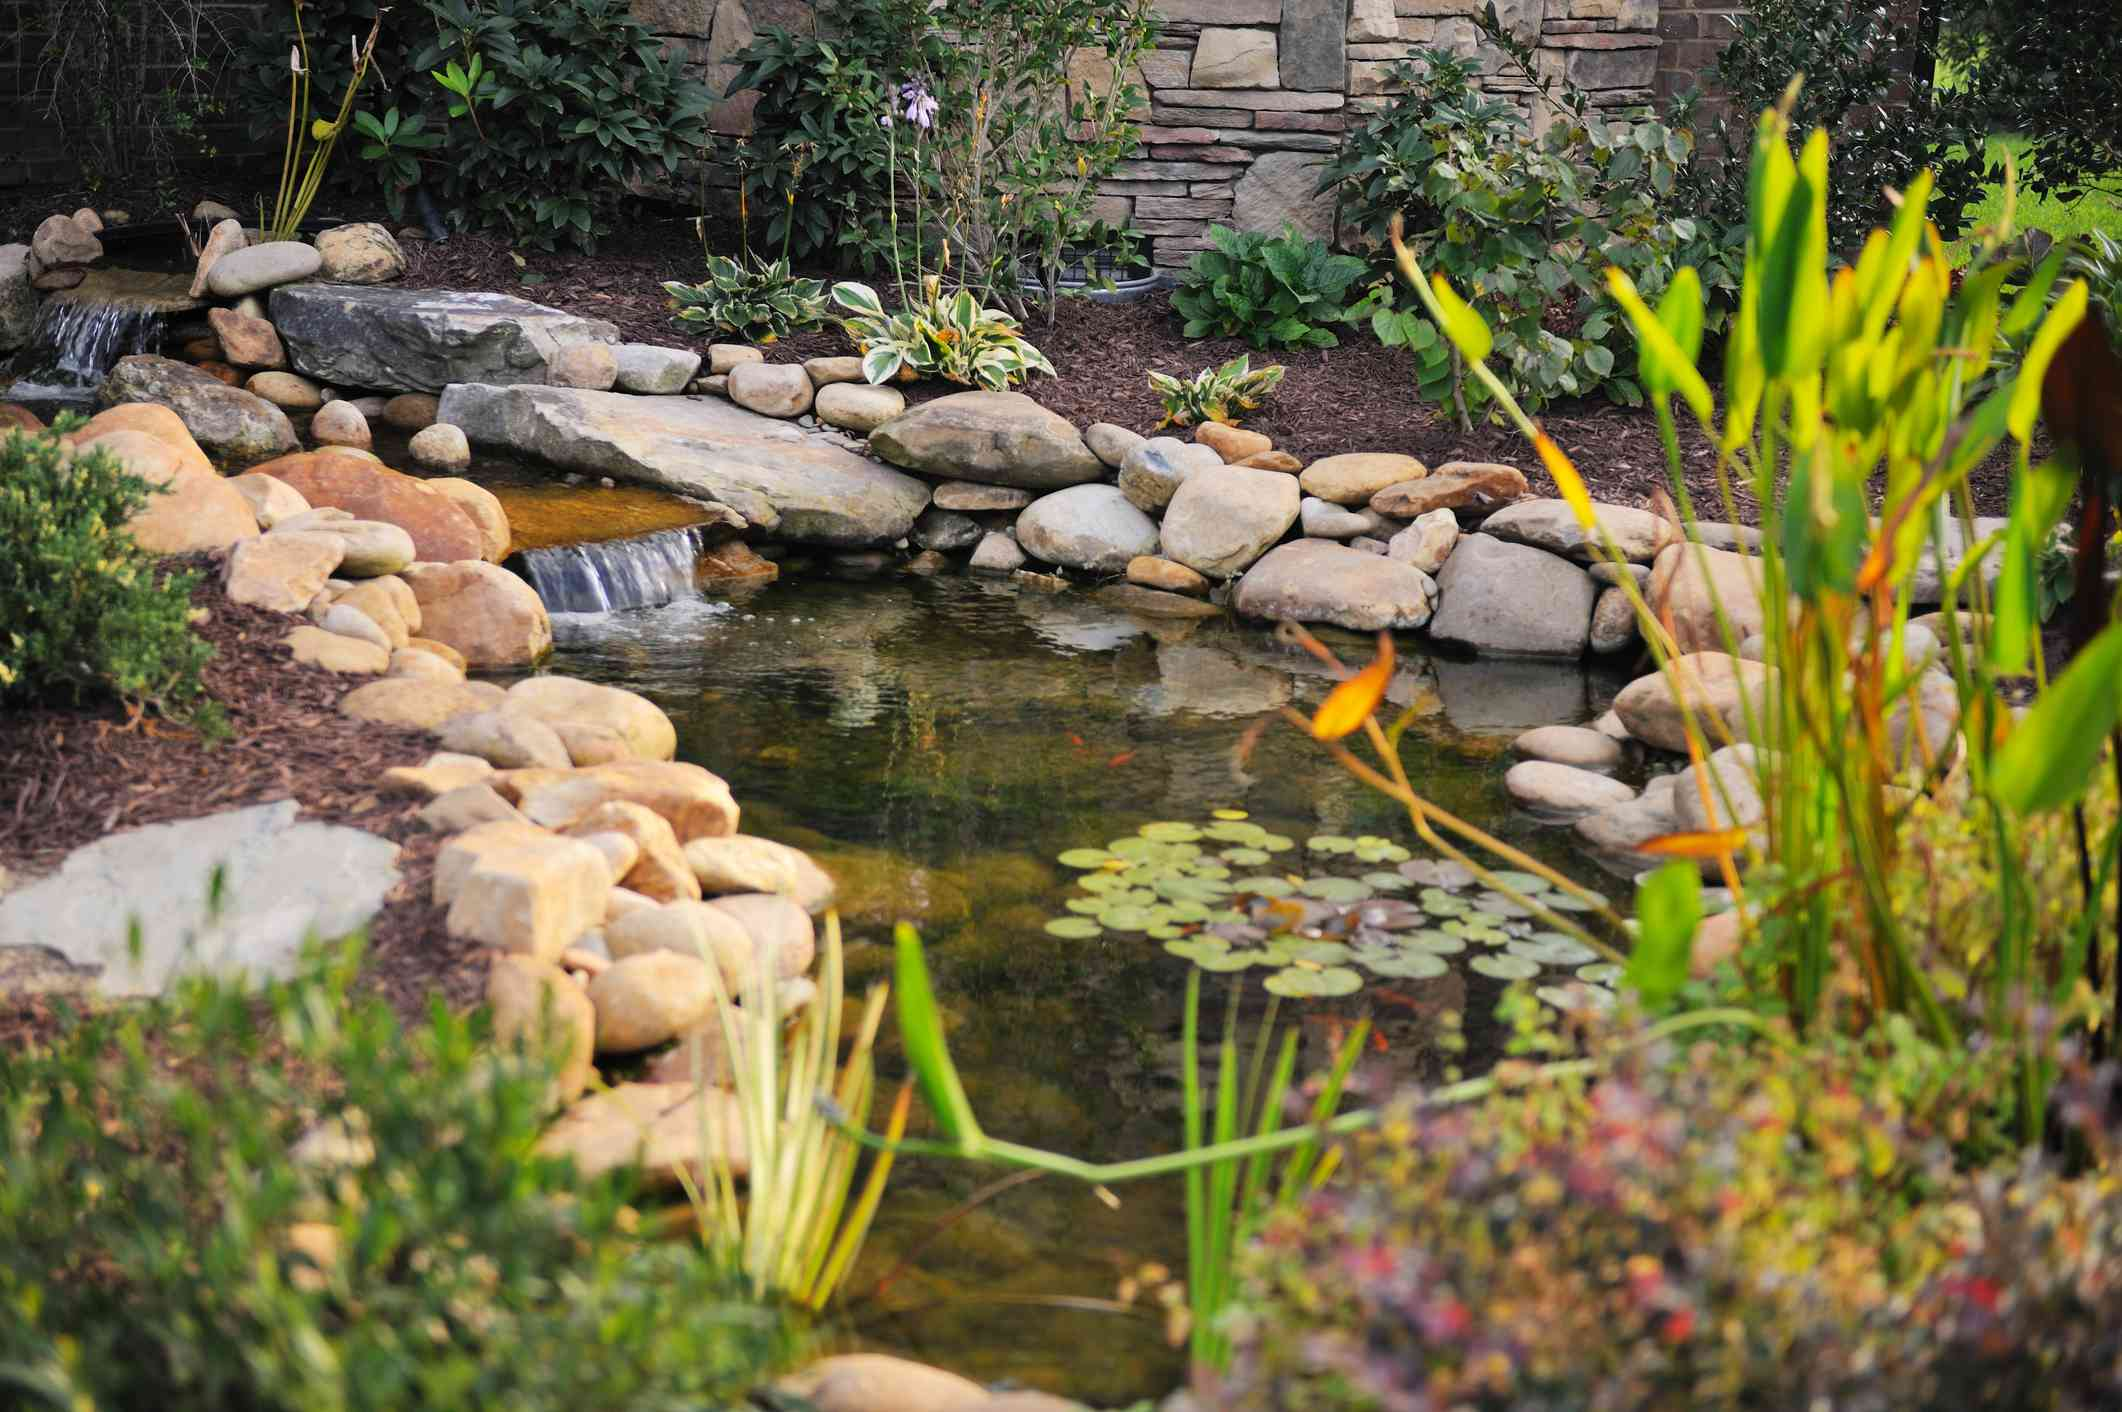 A small koi pond bordered by rocks and a small waterfall.